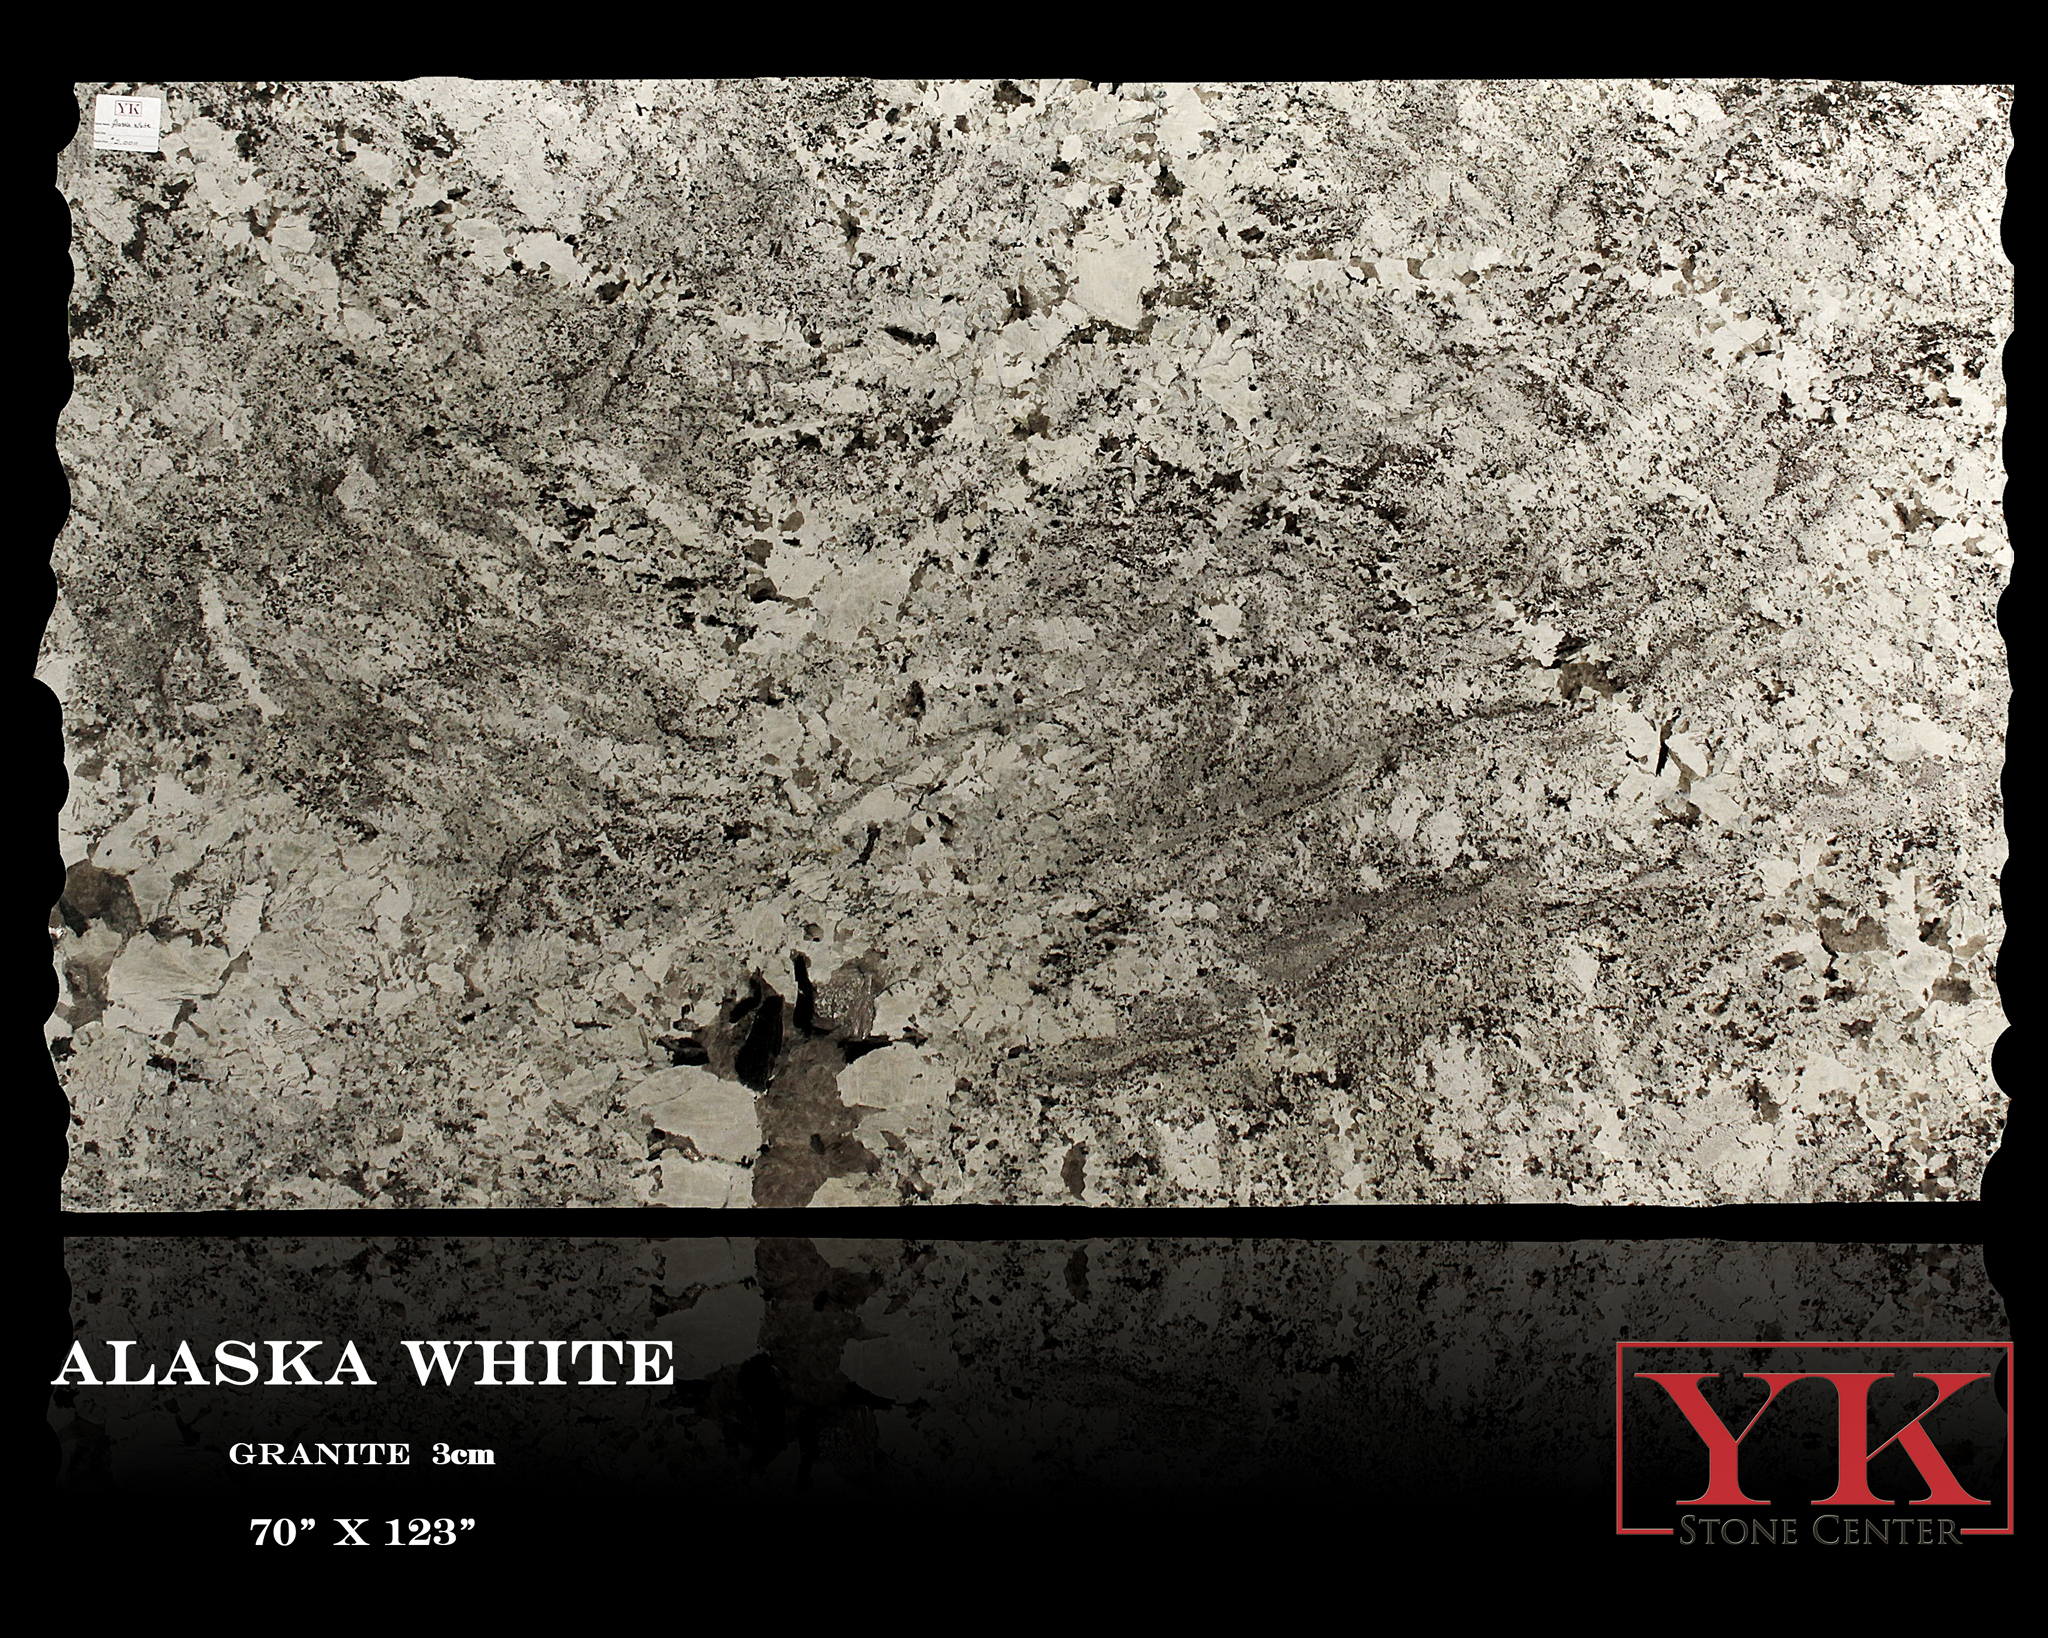 Alaska White granite slab Denver